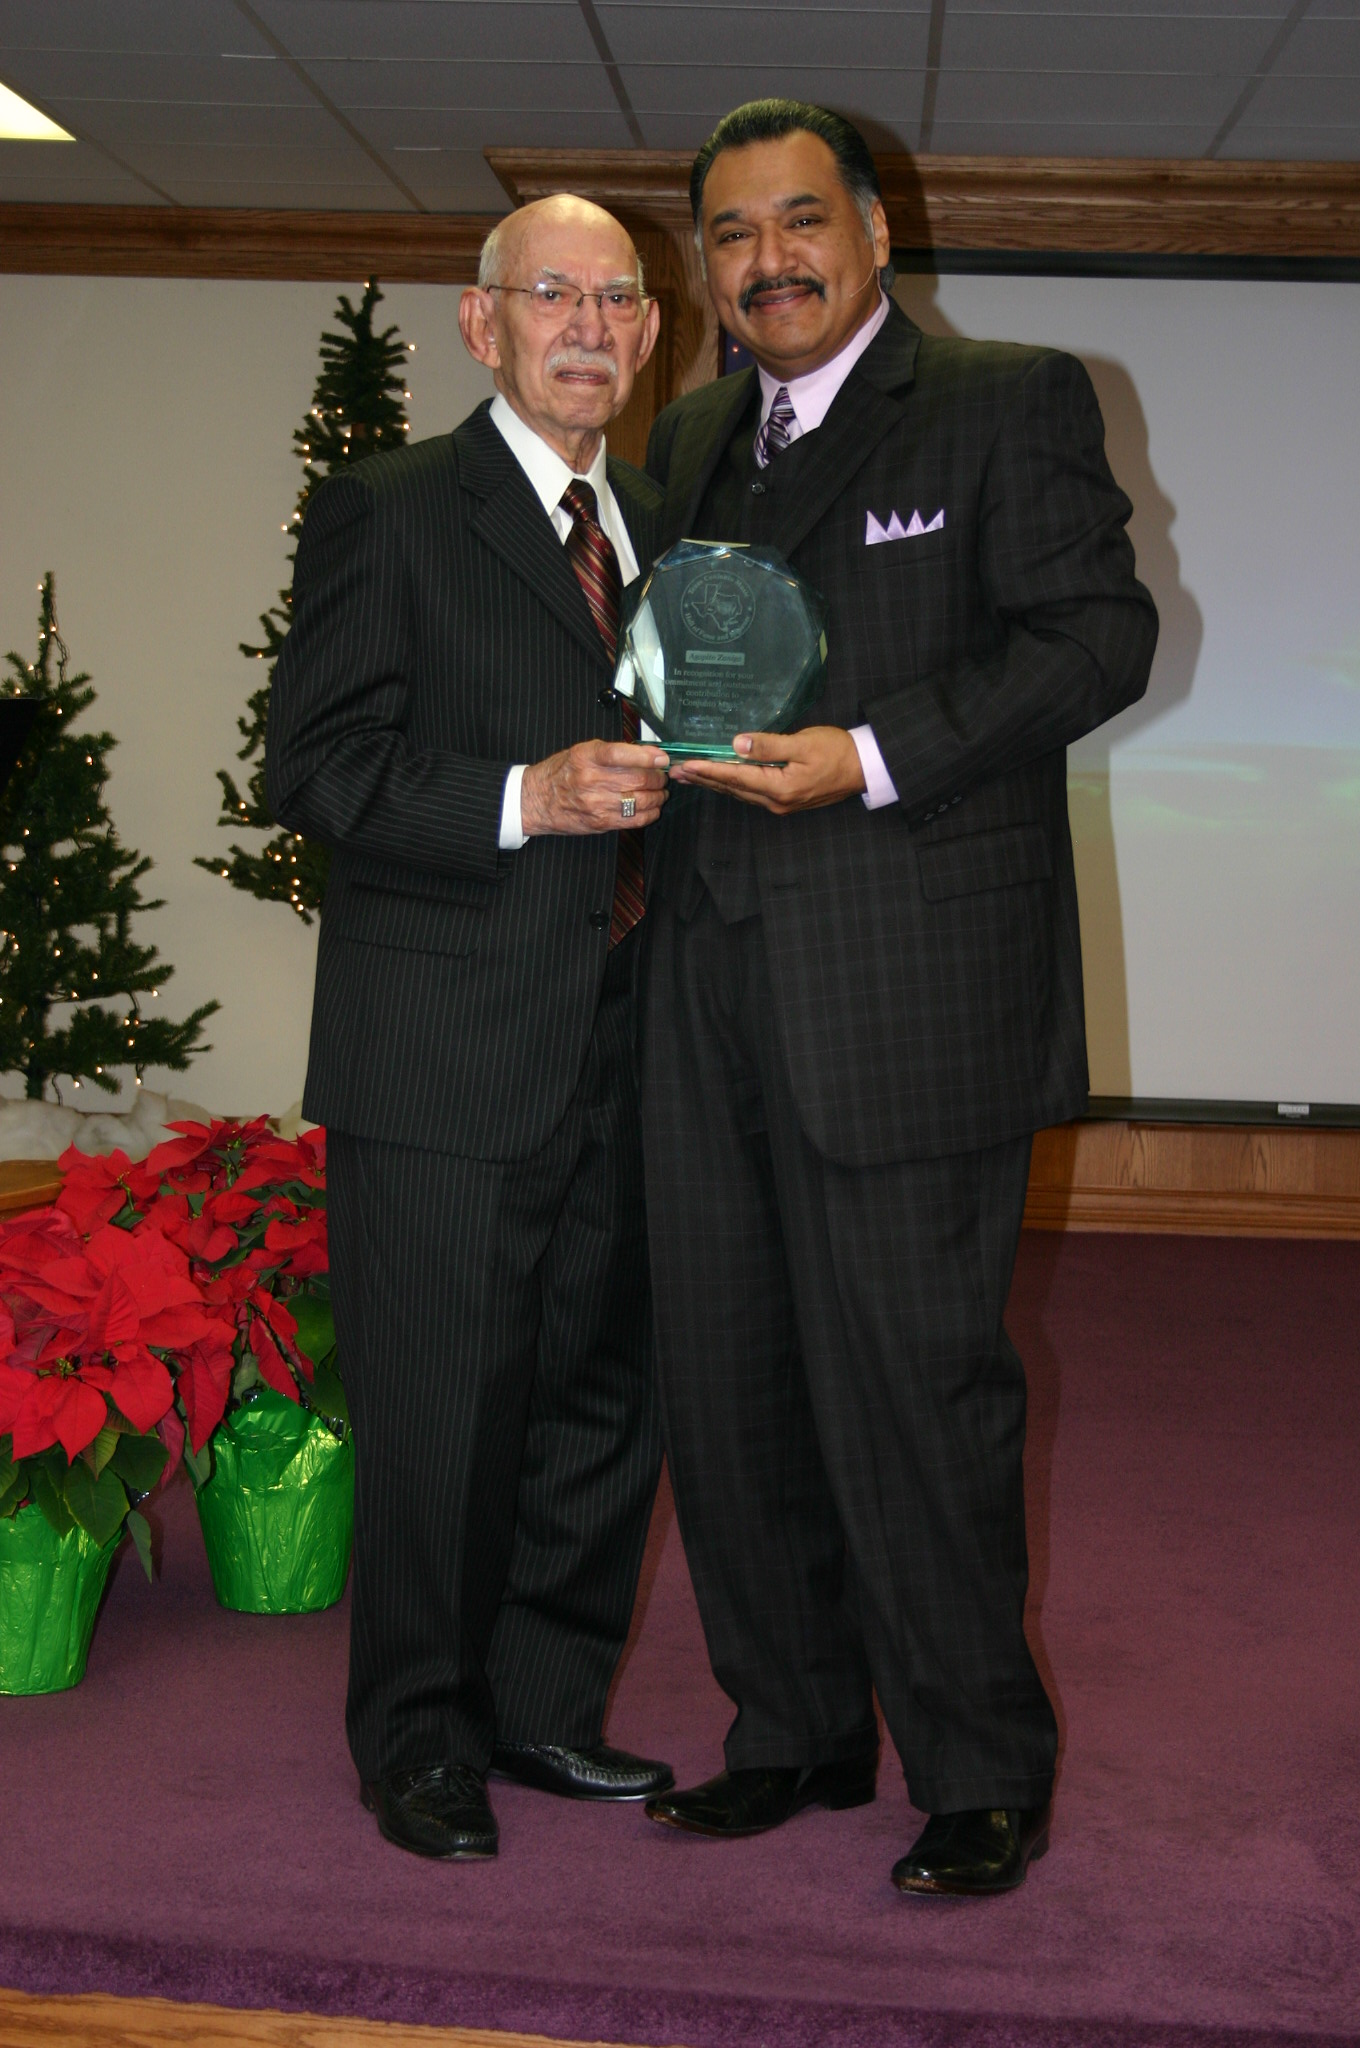 Pastor Arnold with Dad